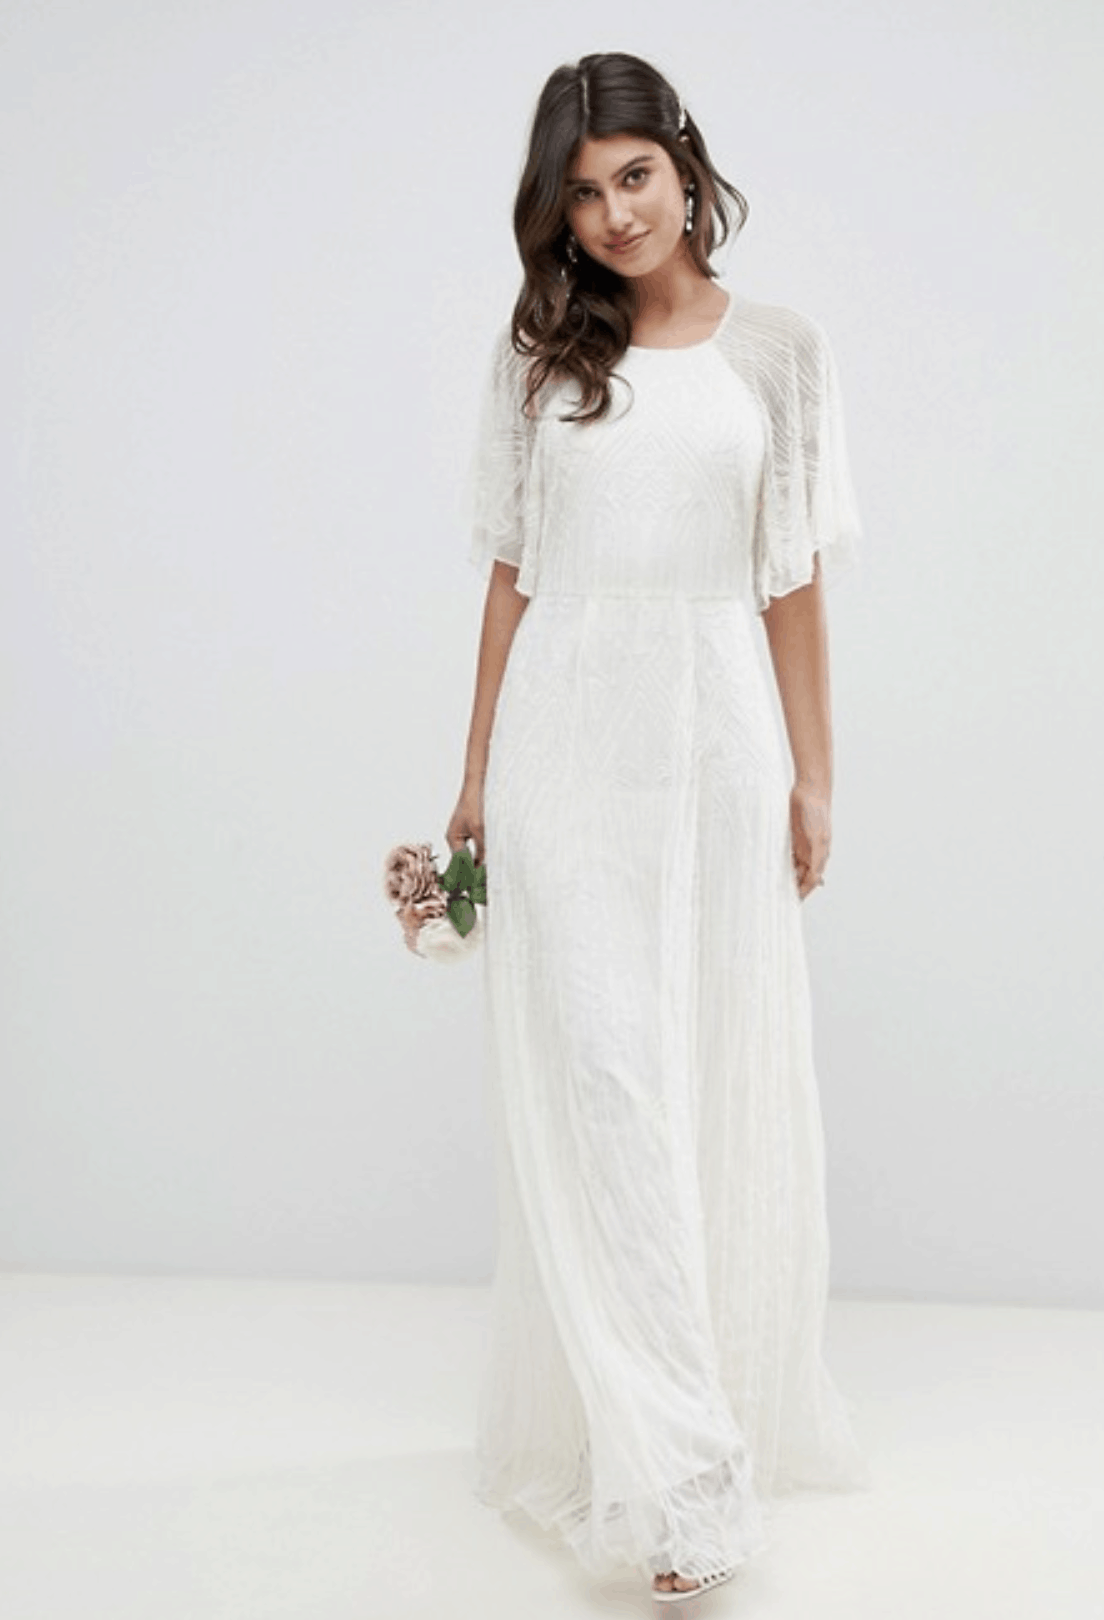 Cheap Affordable Bridal Gowns and Wedding Dresses ASOS Edition Deco Embellished Wedding Dress